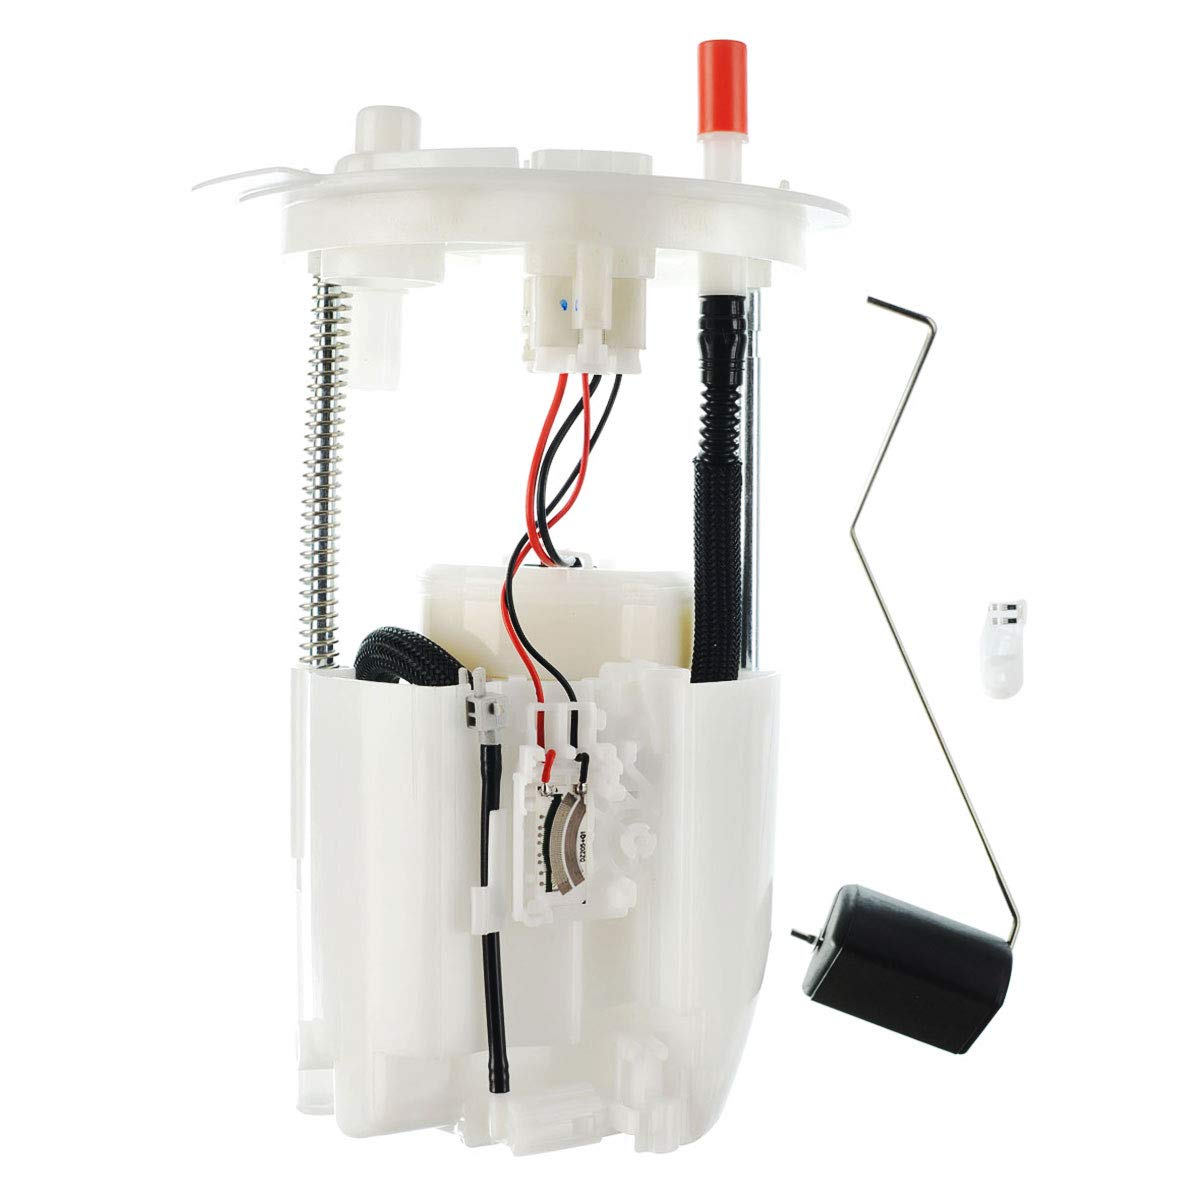 A-Premium Electric Fuel Pump Module Assembly for Ford Taurus Lincoln MKS 2010-2012 3.5L 3.7L 2WD only